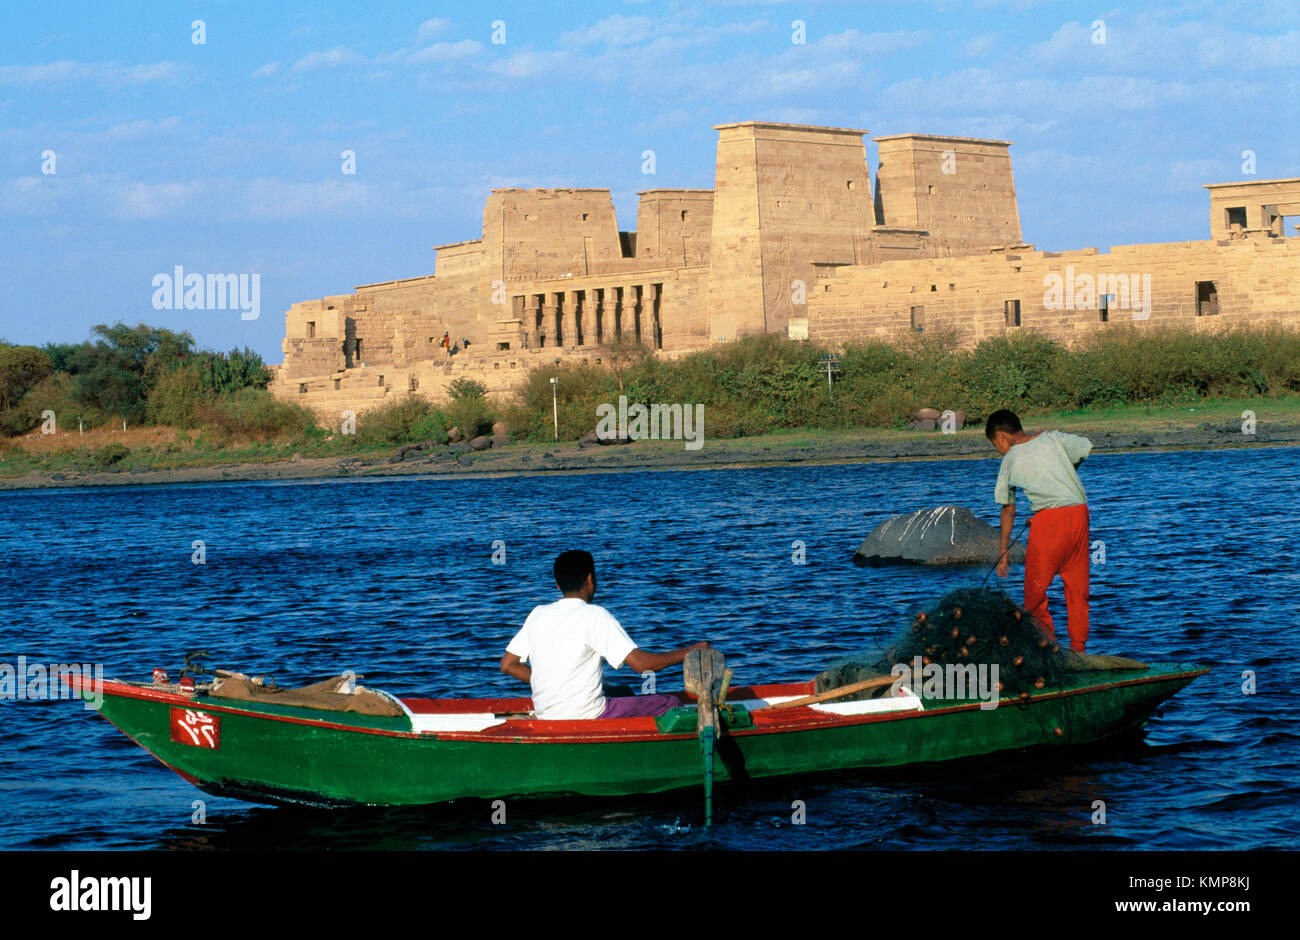 Fishermen Nile River Luxor Egypt Stock Photo